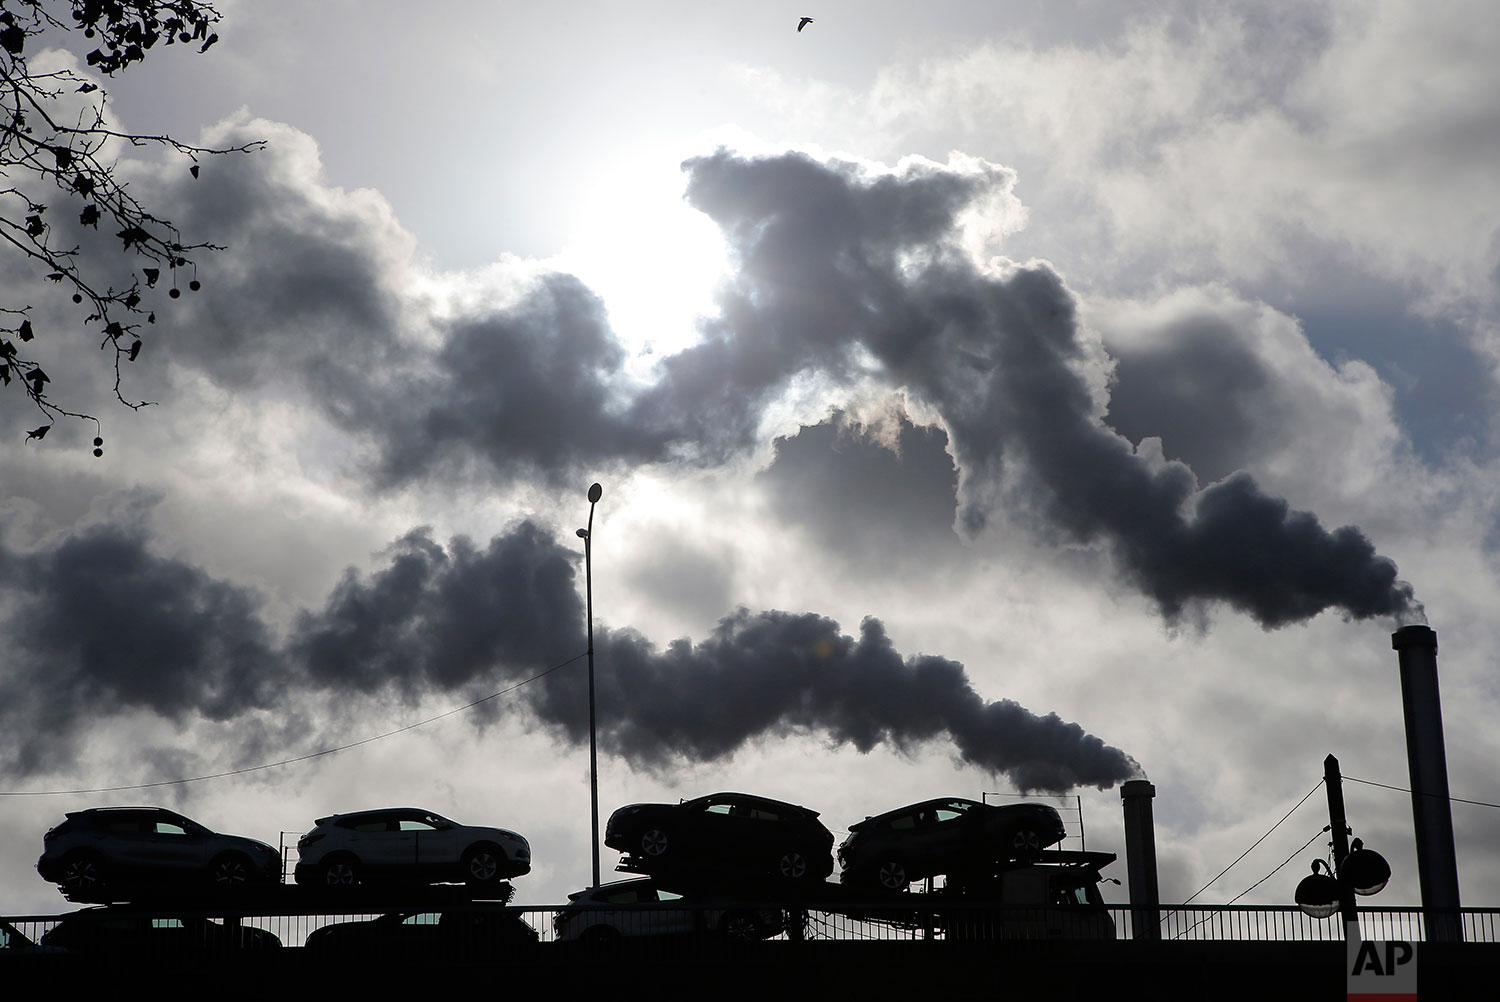 In this Friday, Nov. 30, 2018 photo, smoke rises from a factory as a truck loaded with cars crosses a bridge in Paris, France. (AP Photo/Michel Euler)